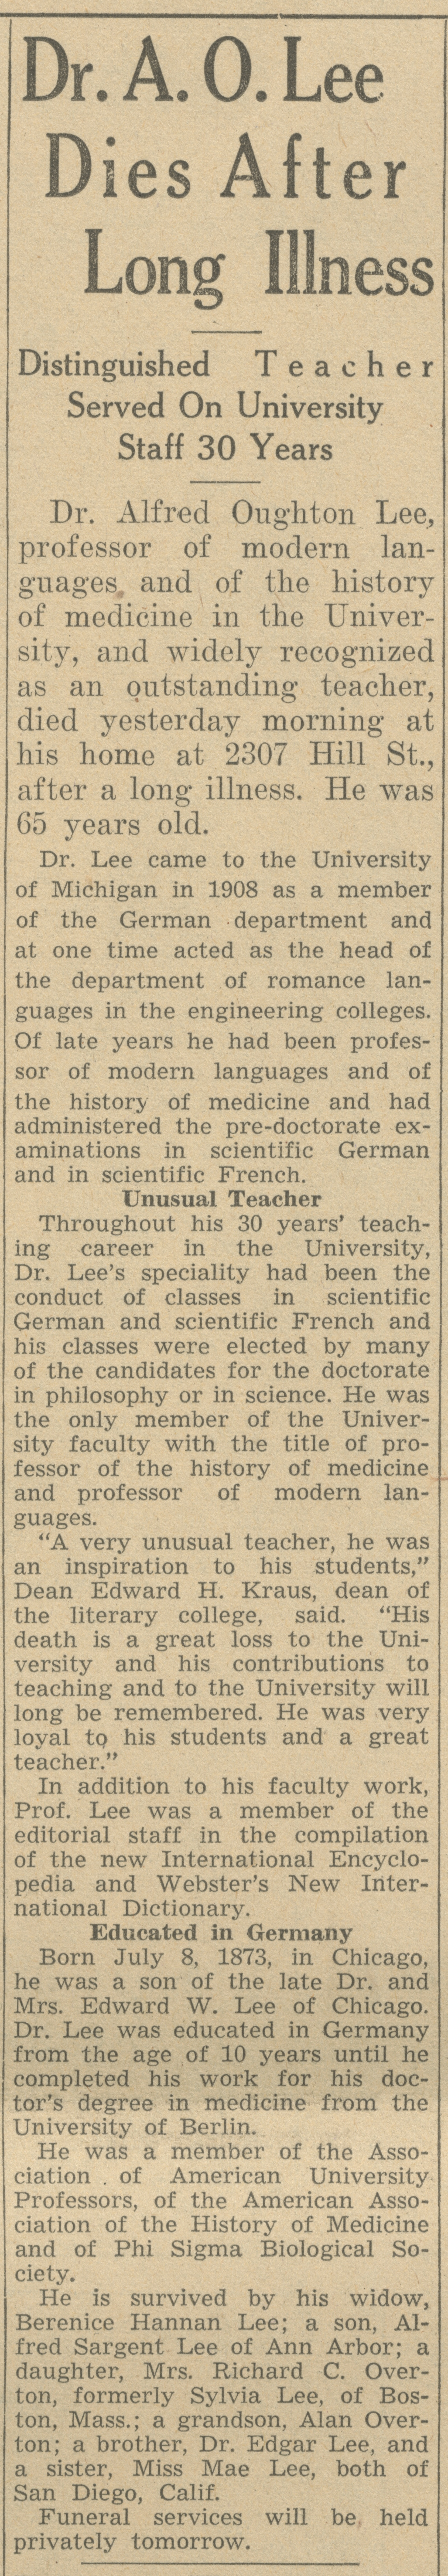 Dr. A. O. Lee Dies After Long Illness image